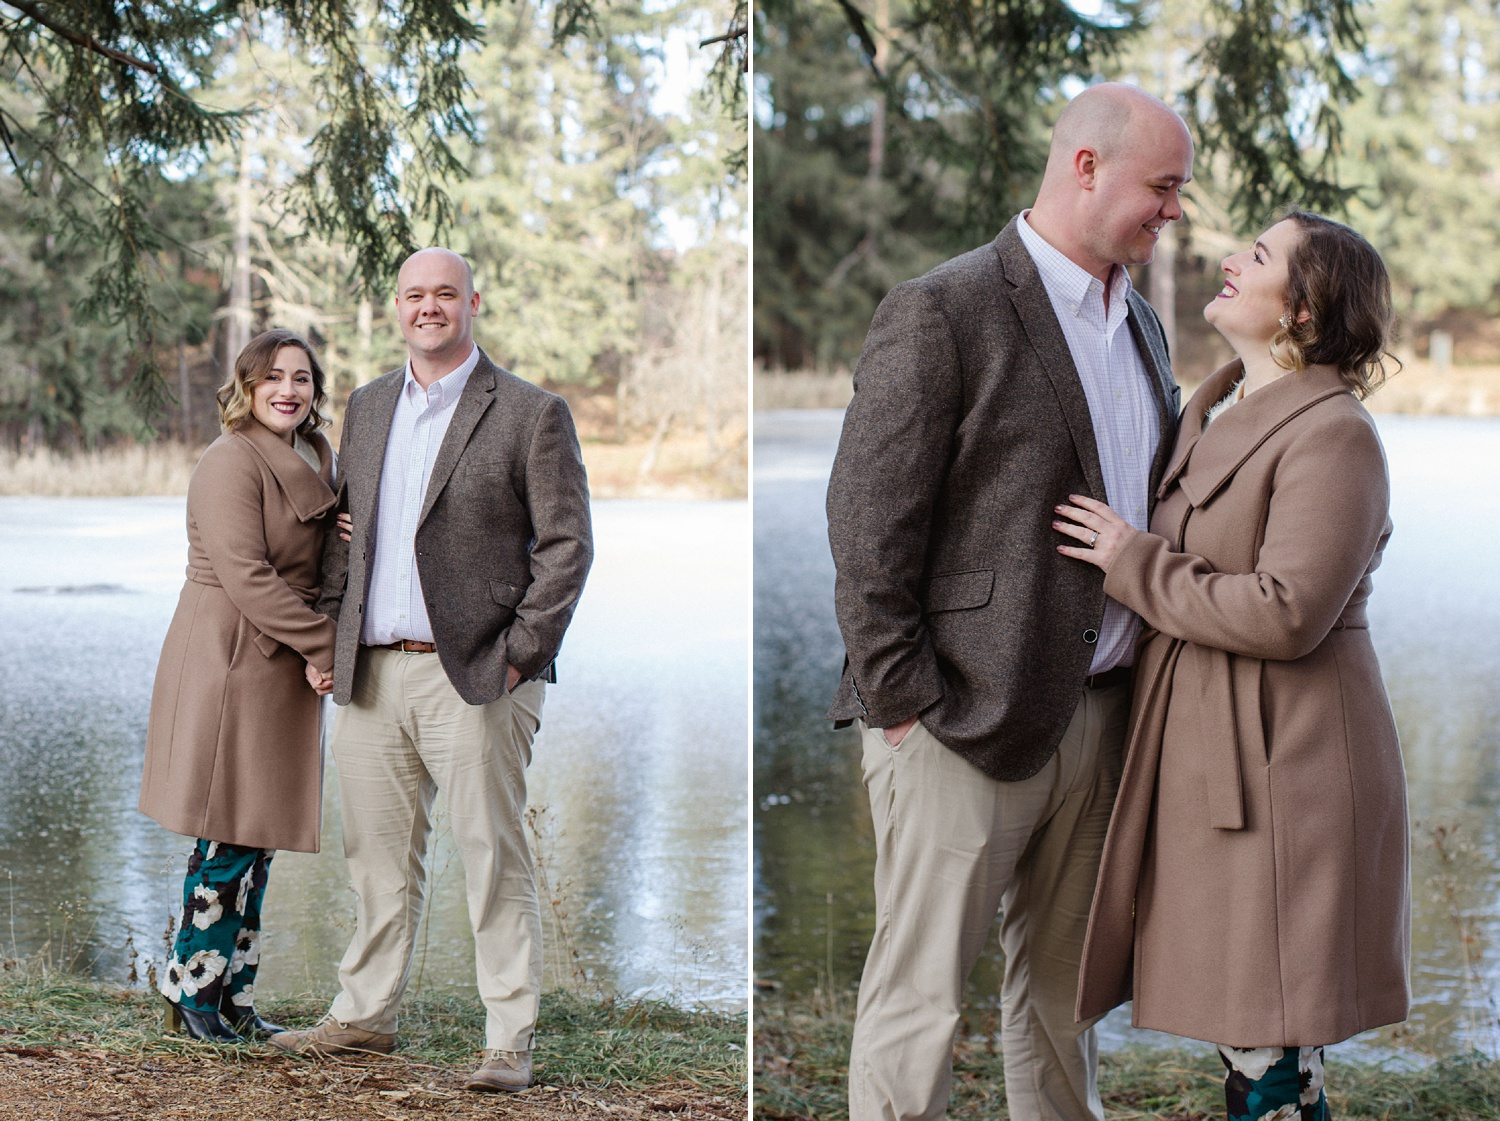 Clarks Summit PA Engagement Session Anniversary Photos_0006.jpg